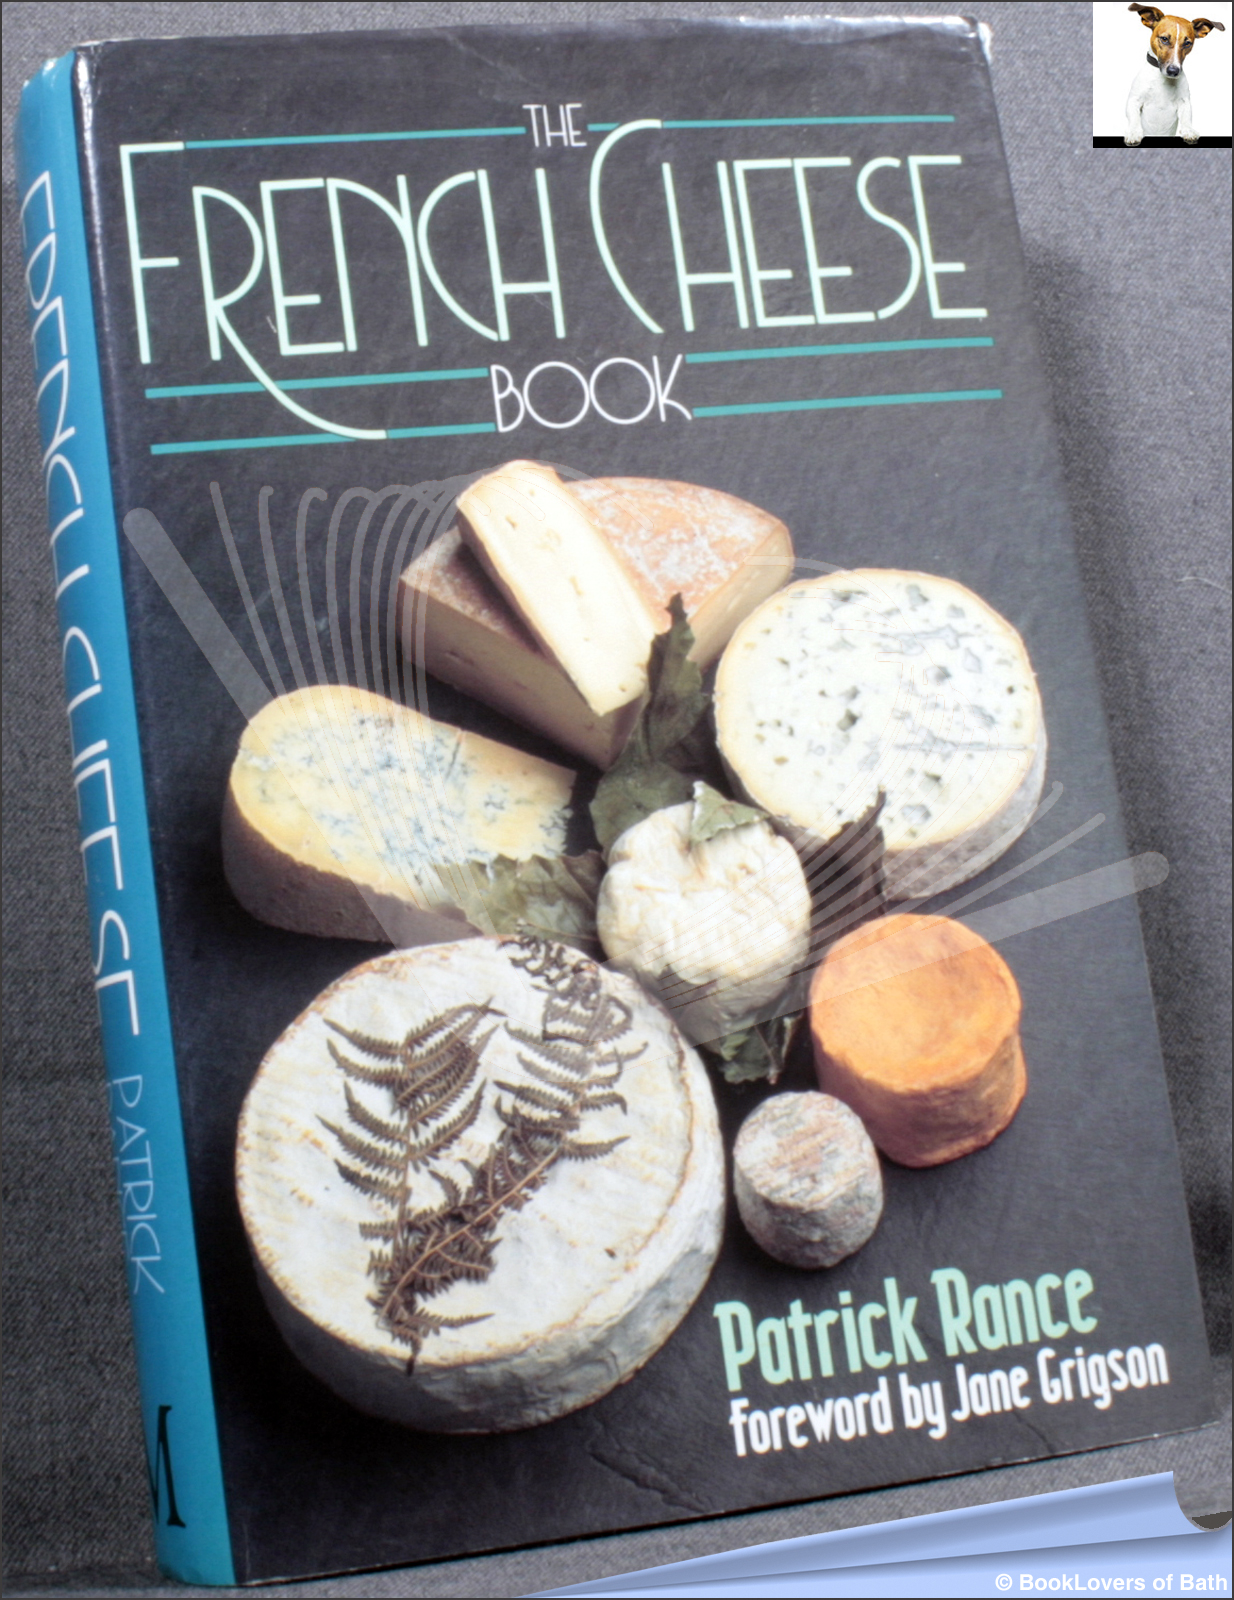 The French Cheese Book - Patrick Rance